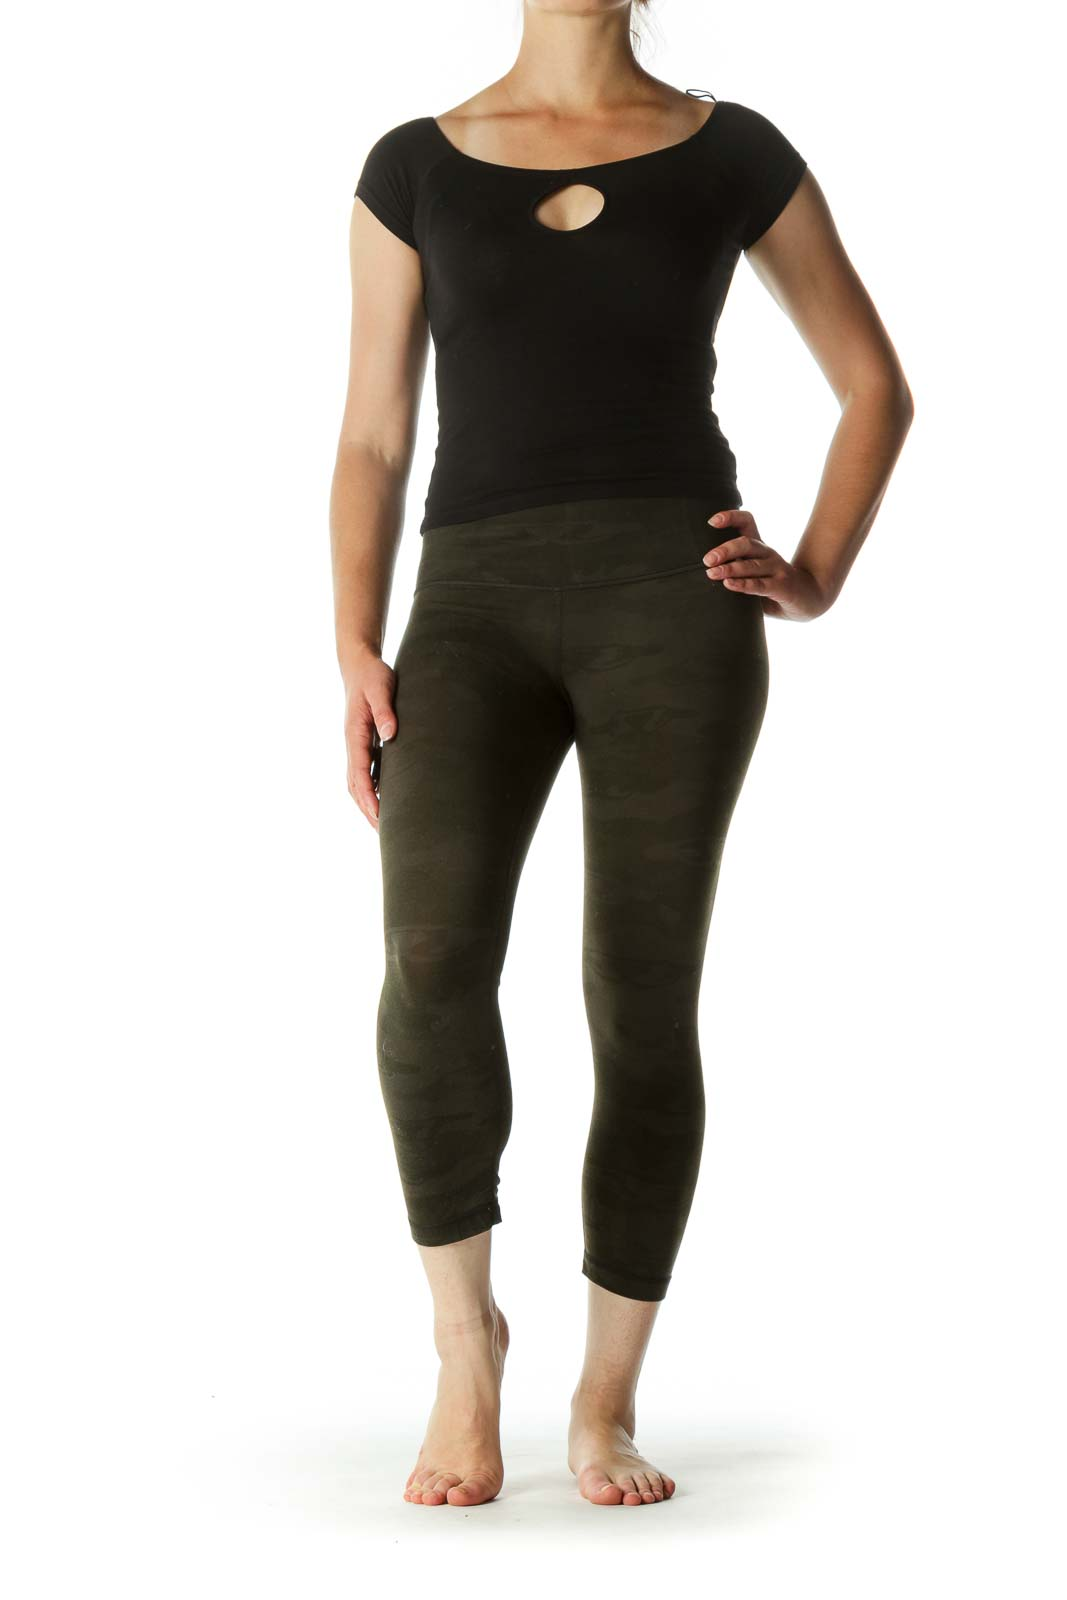 Green Camouflage Print Stretch Active Stretch Pants